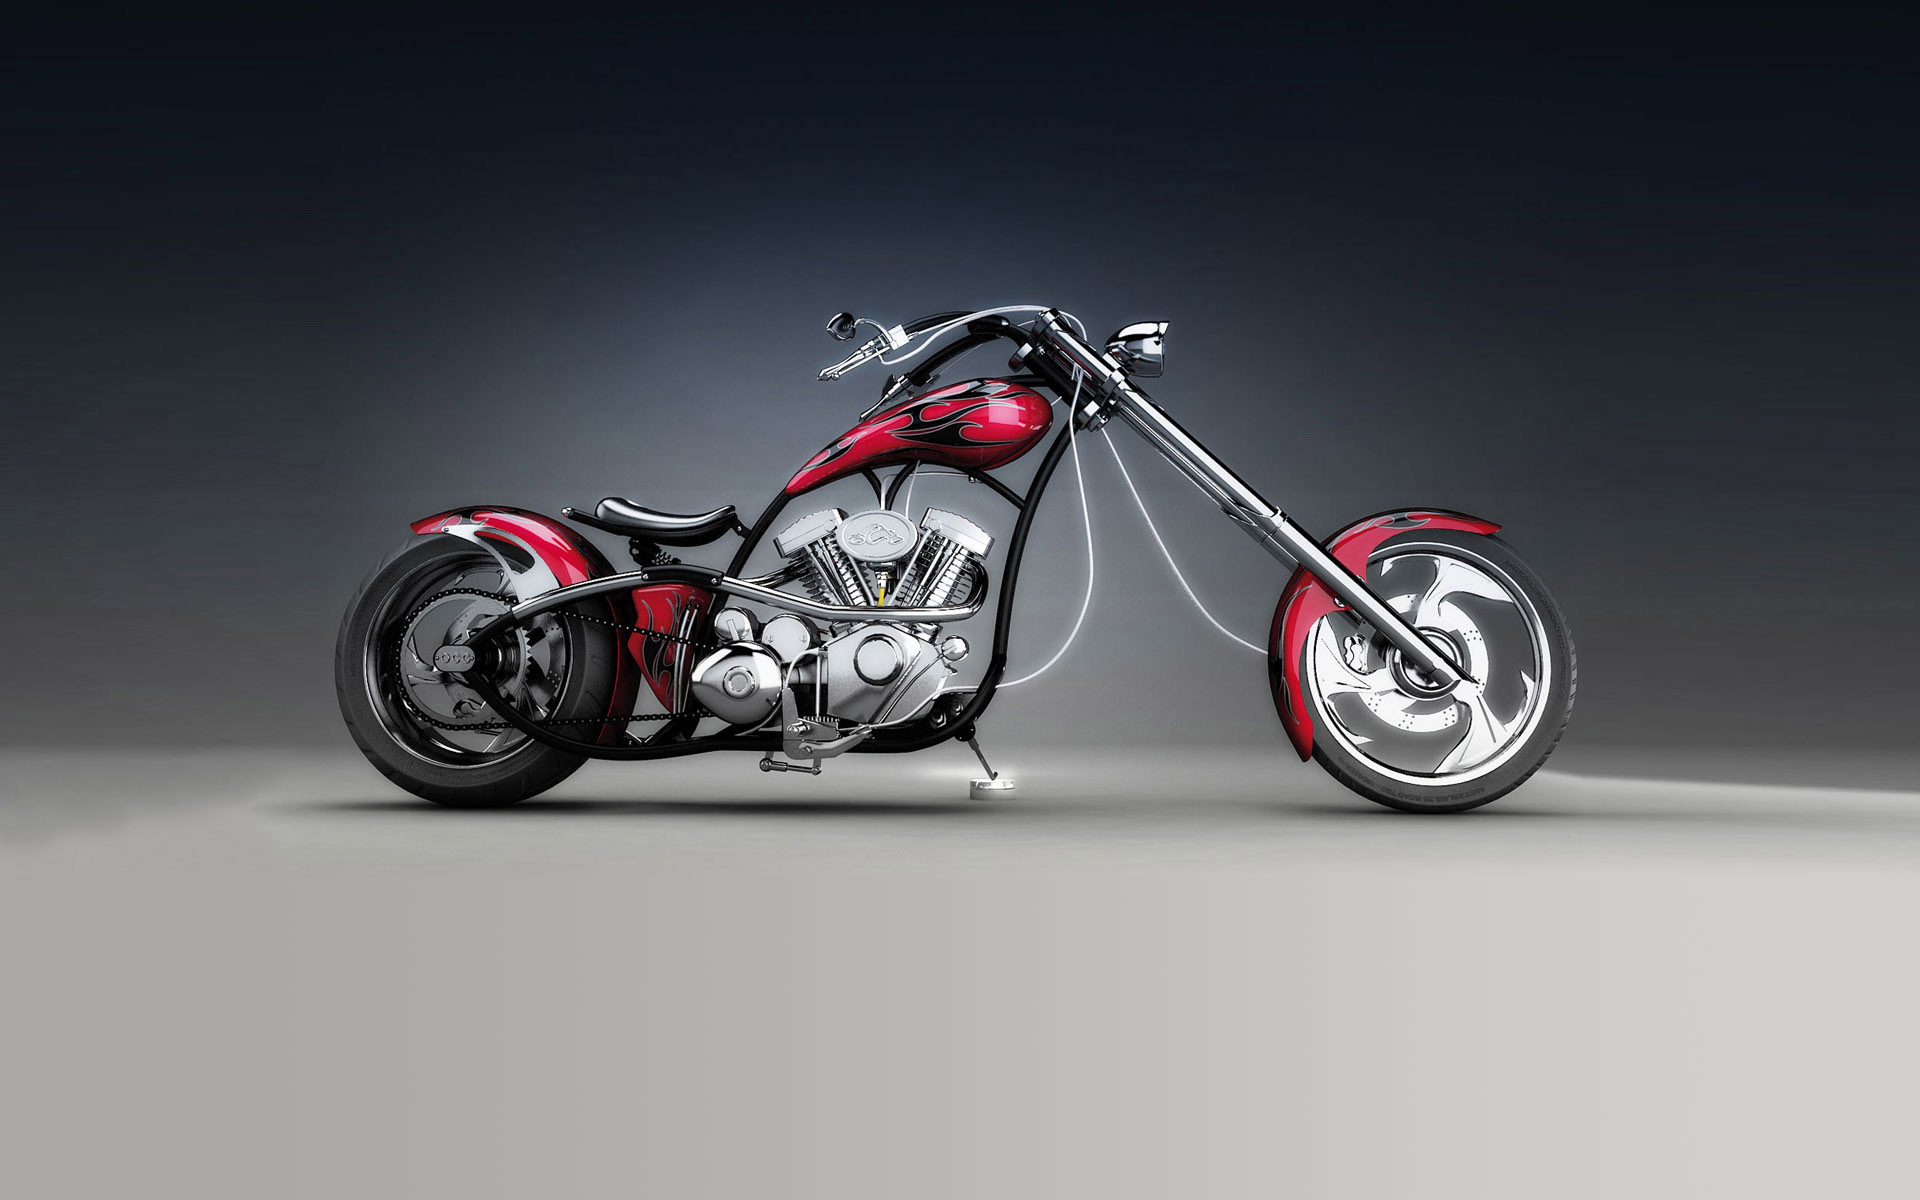 American Choppers Desktop Wallpapers With Resolutions 19201200 Pixel 1920x1200